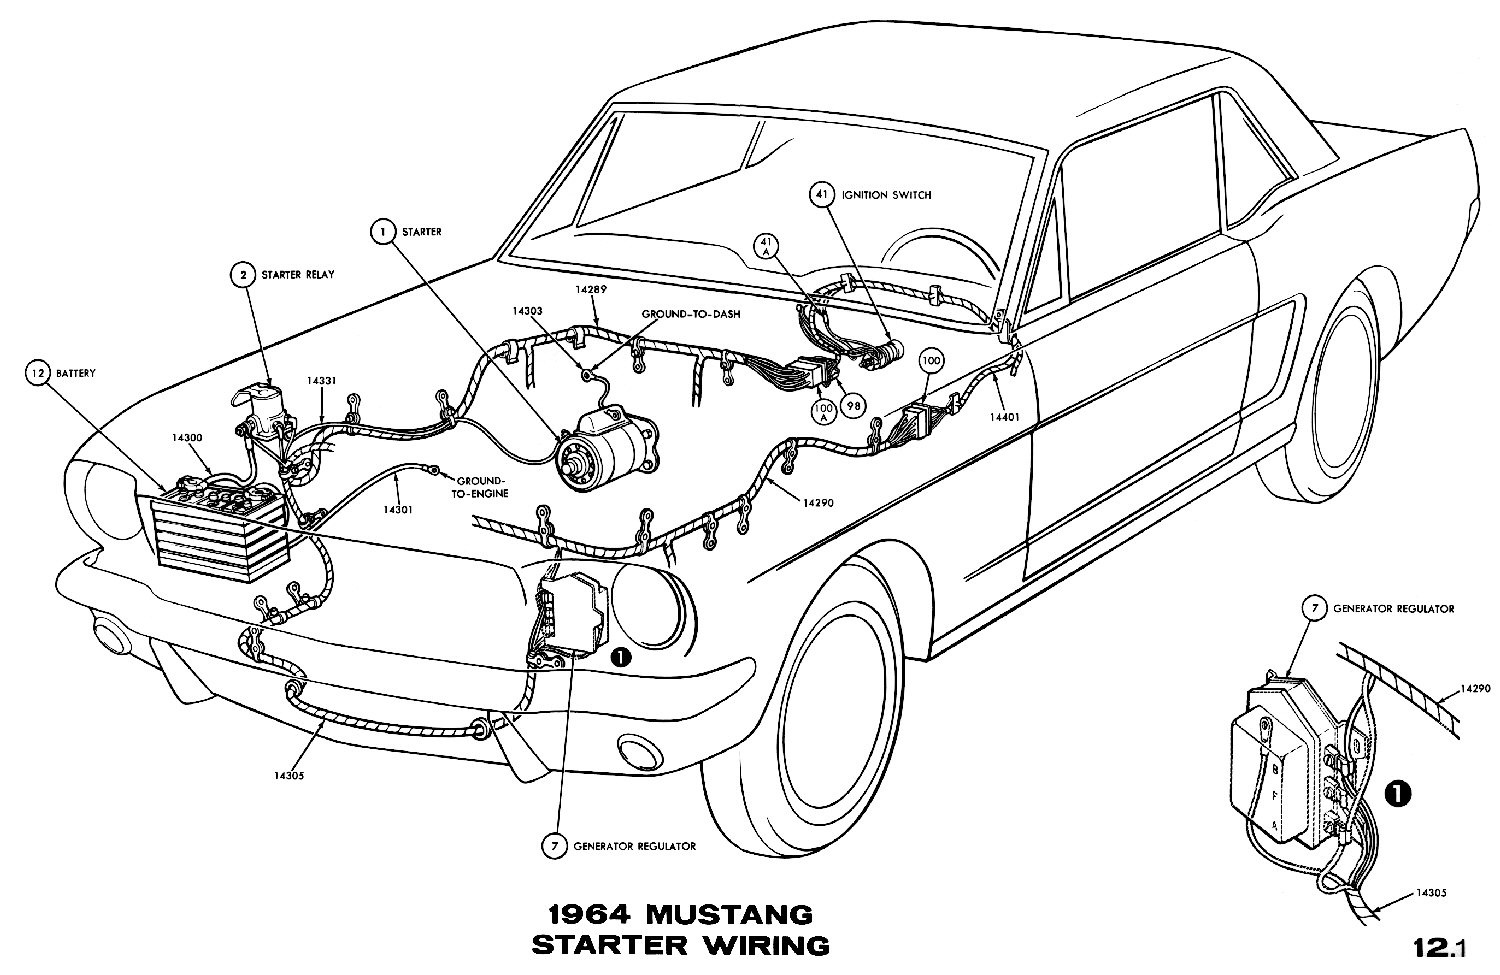 1964d 1964 mustang wiring diagrams average joe restoration 1966 mustang starter solenoid wiring diagram at bayanpartner.co